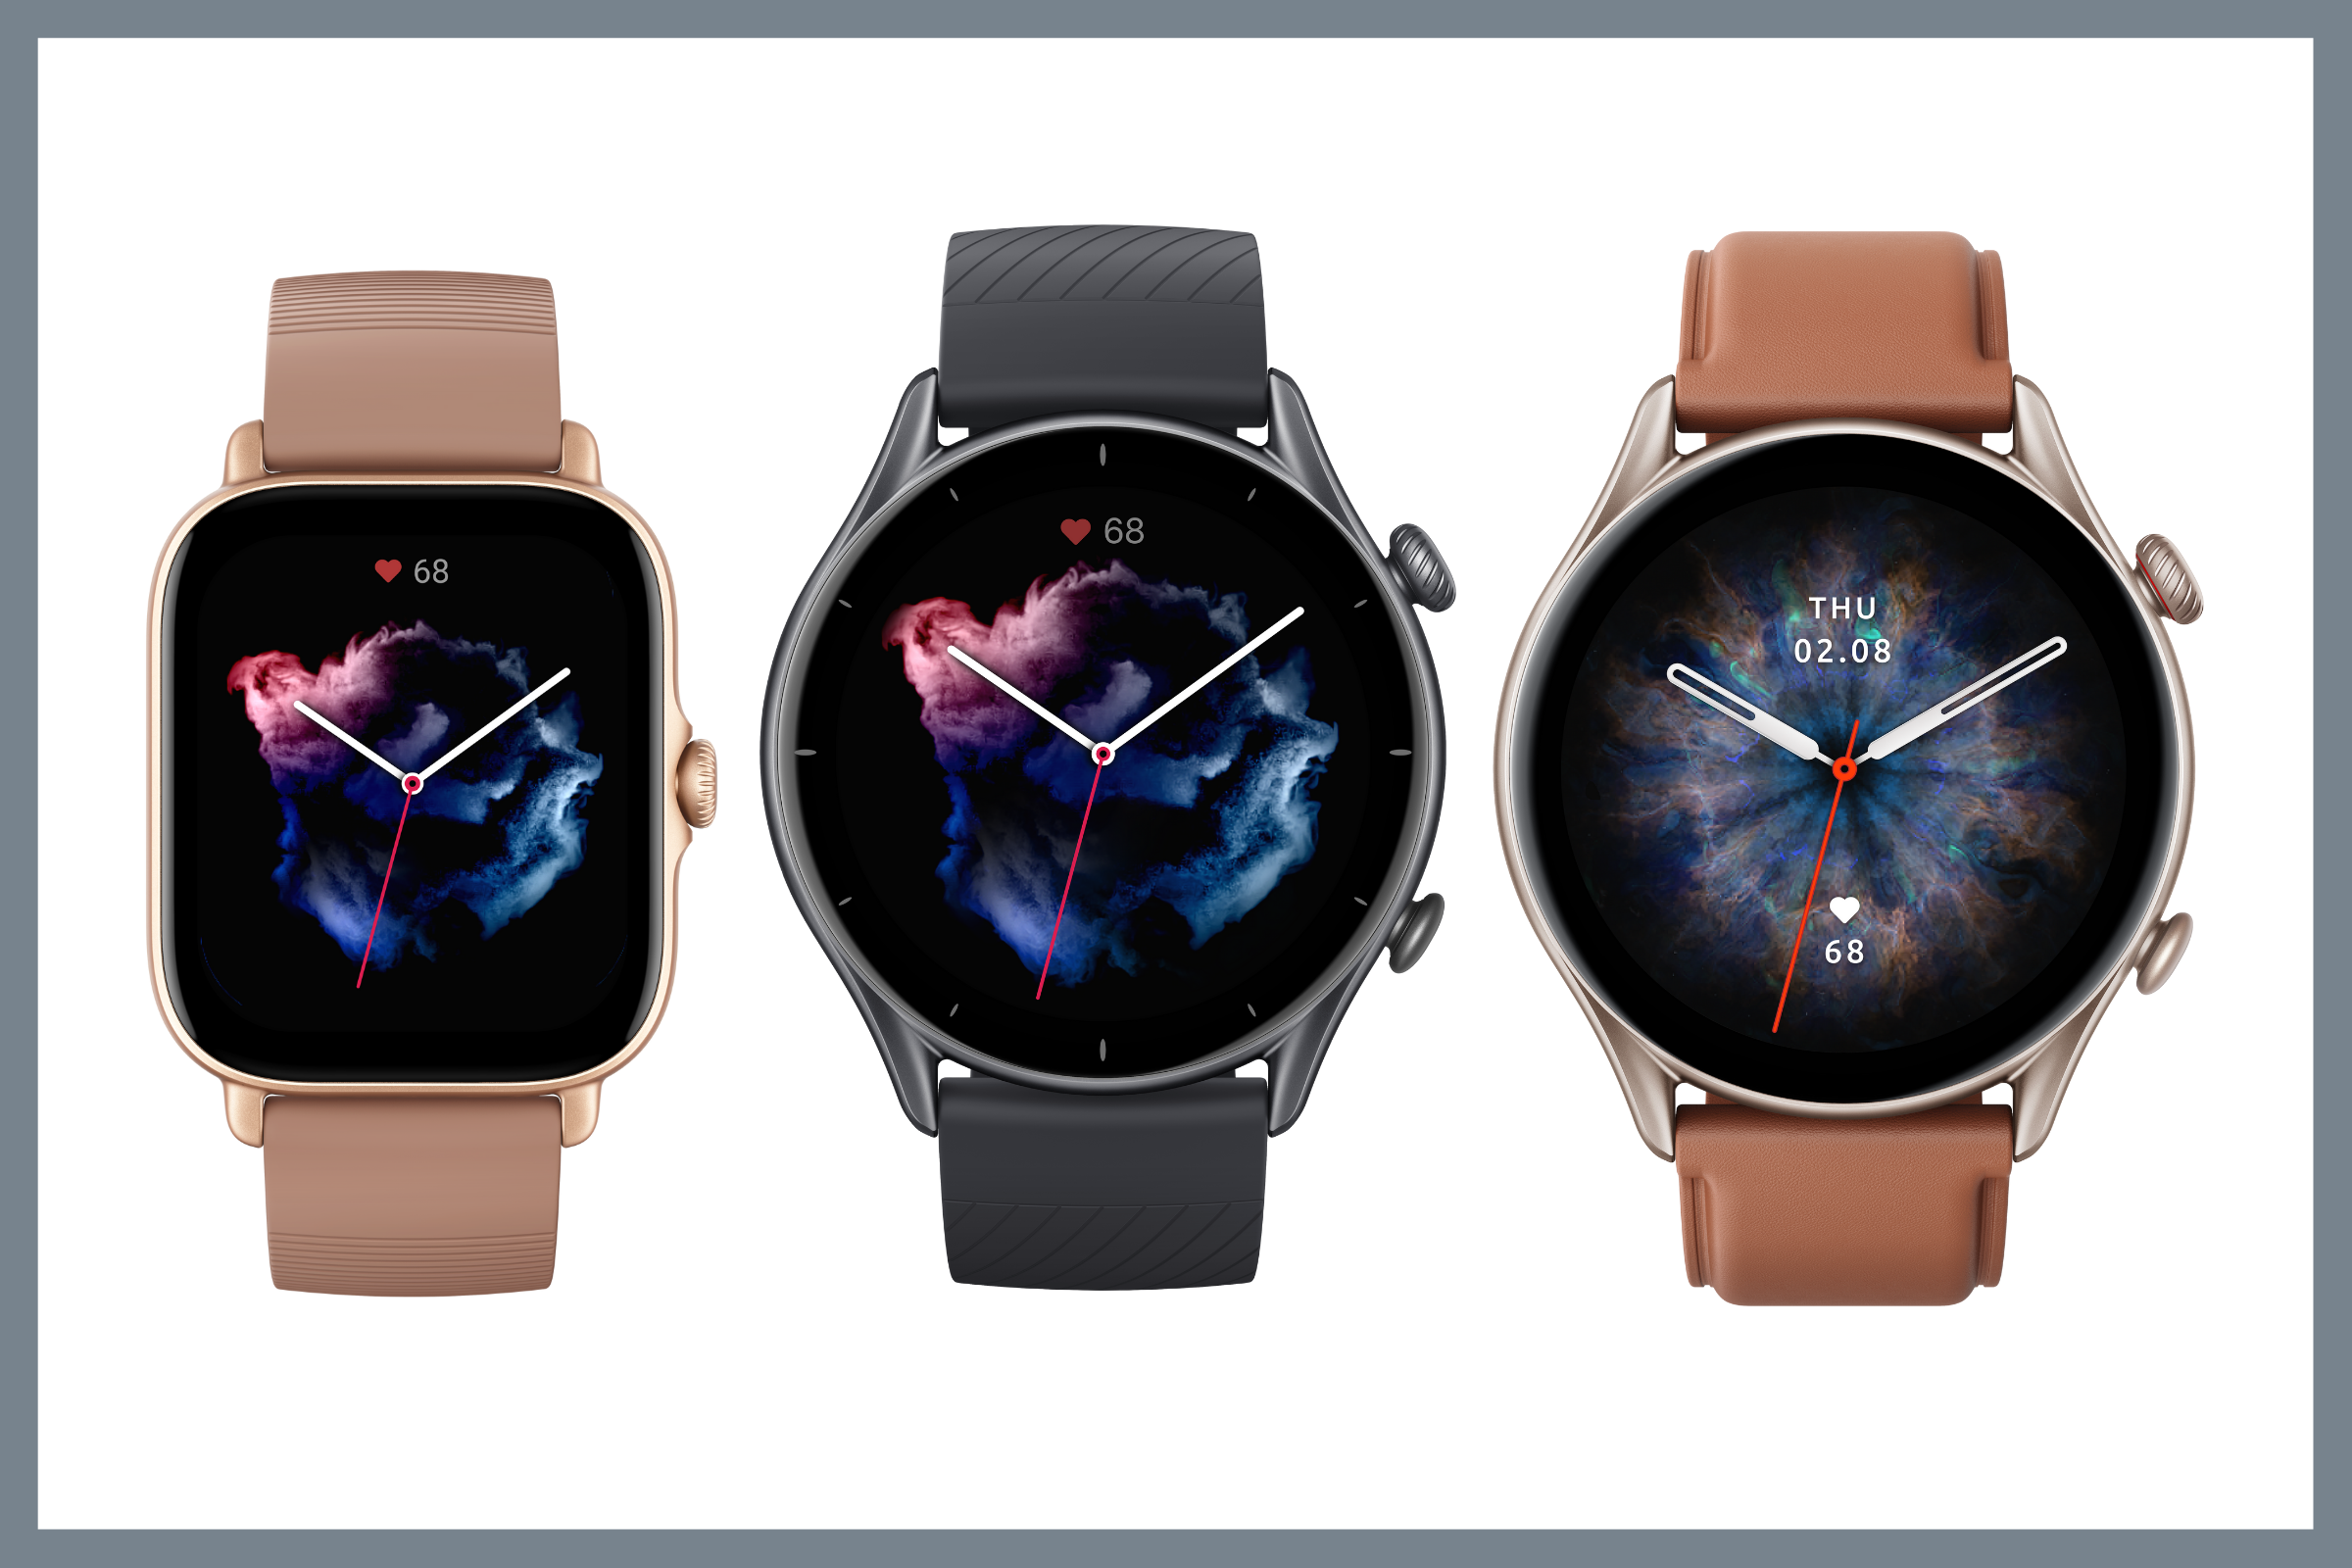 Amazfit launches GTS 3, GTR 3 and GTR 3 Pro smartwatches